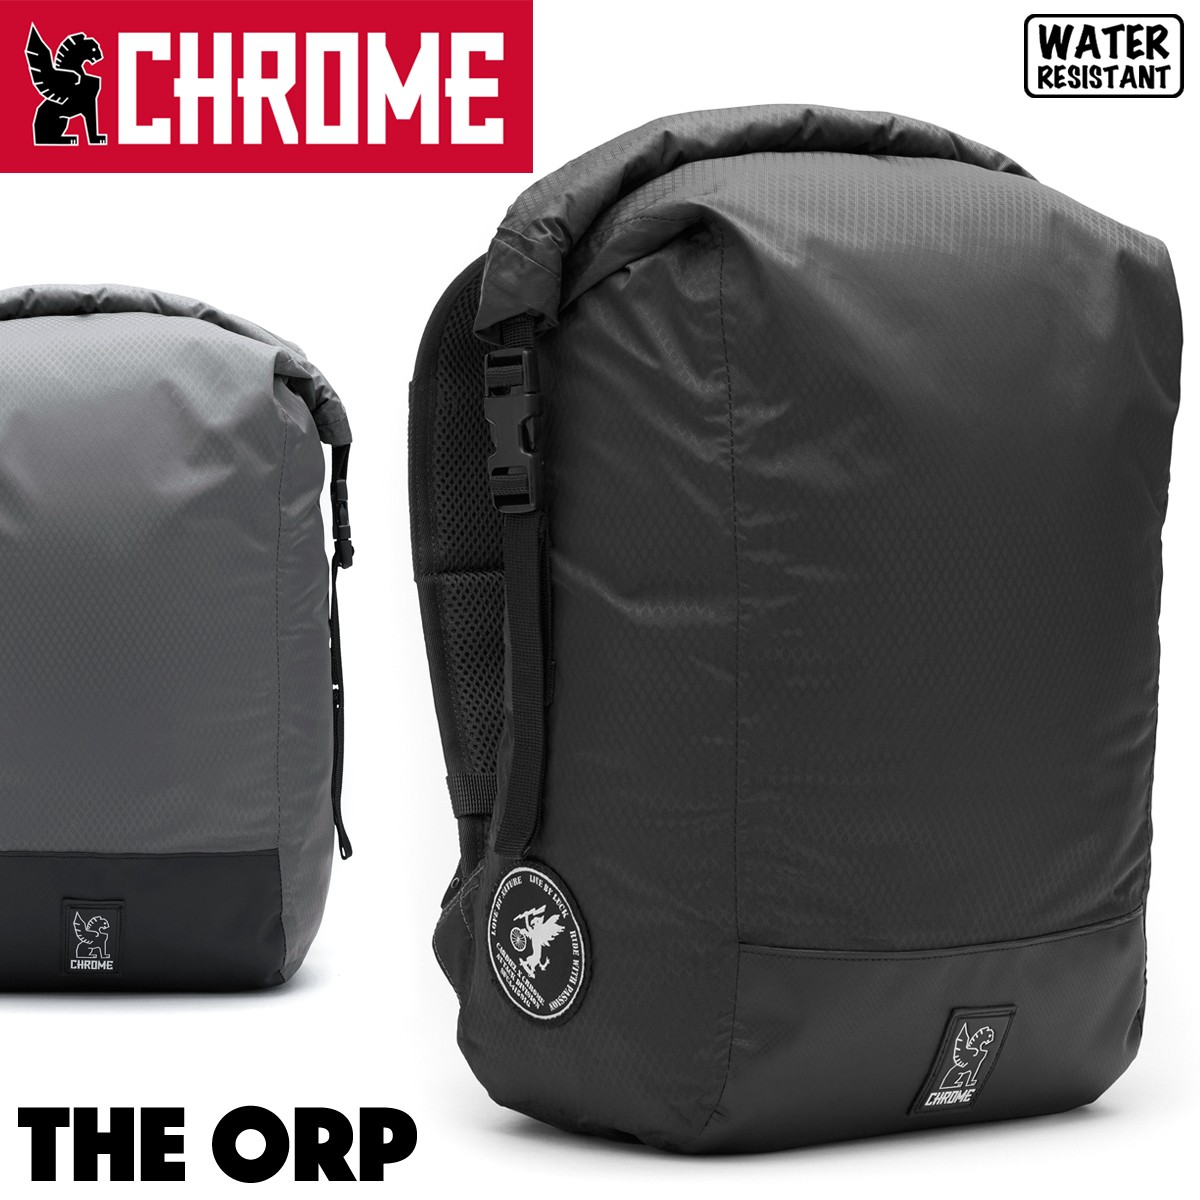 CHROME THE ORP